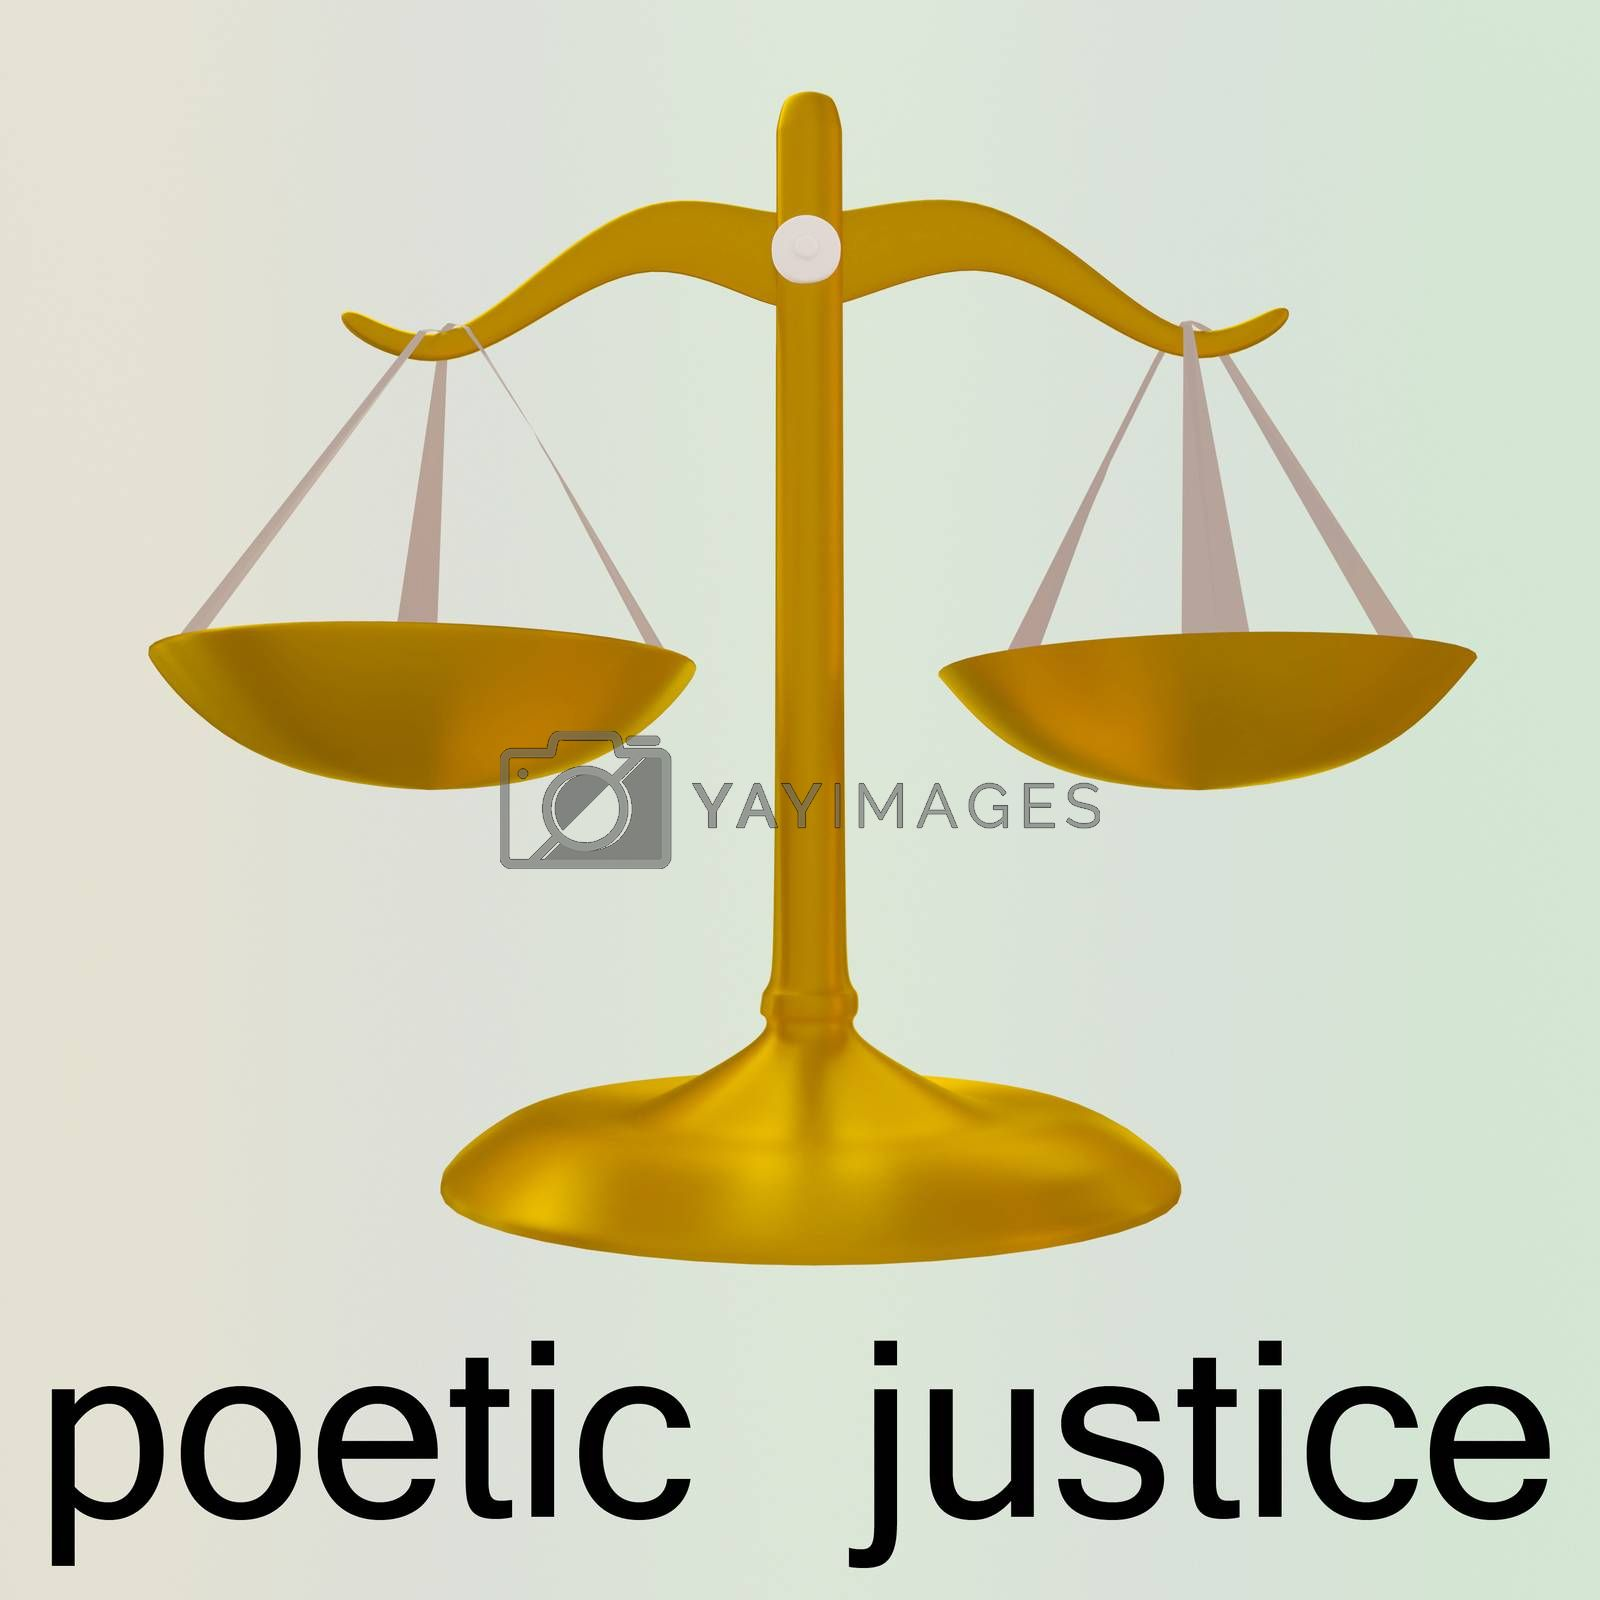 3D illustration of scales  and the words poetic justice at the bottom, isolated over pale colored background.